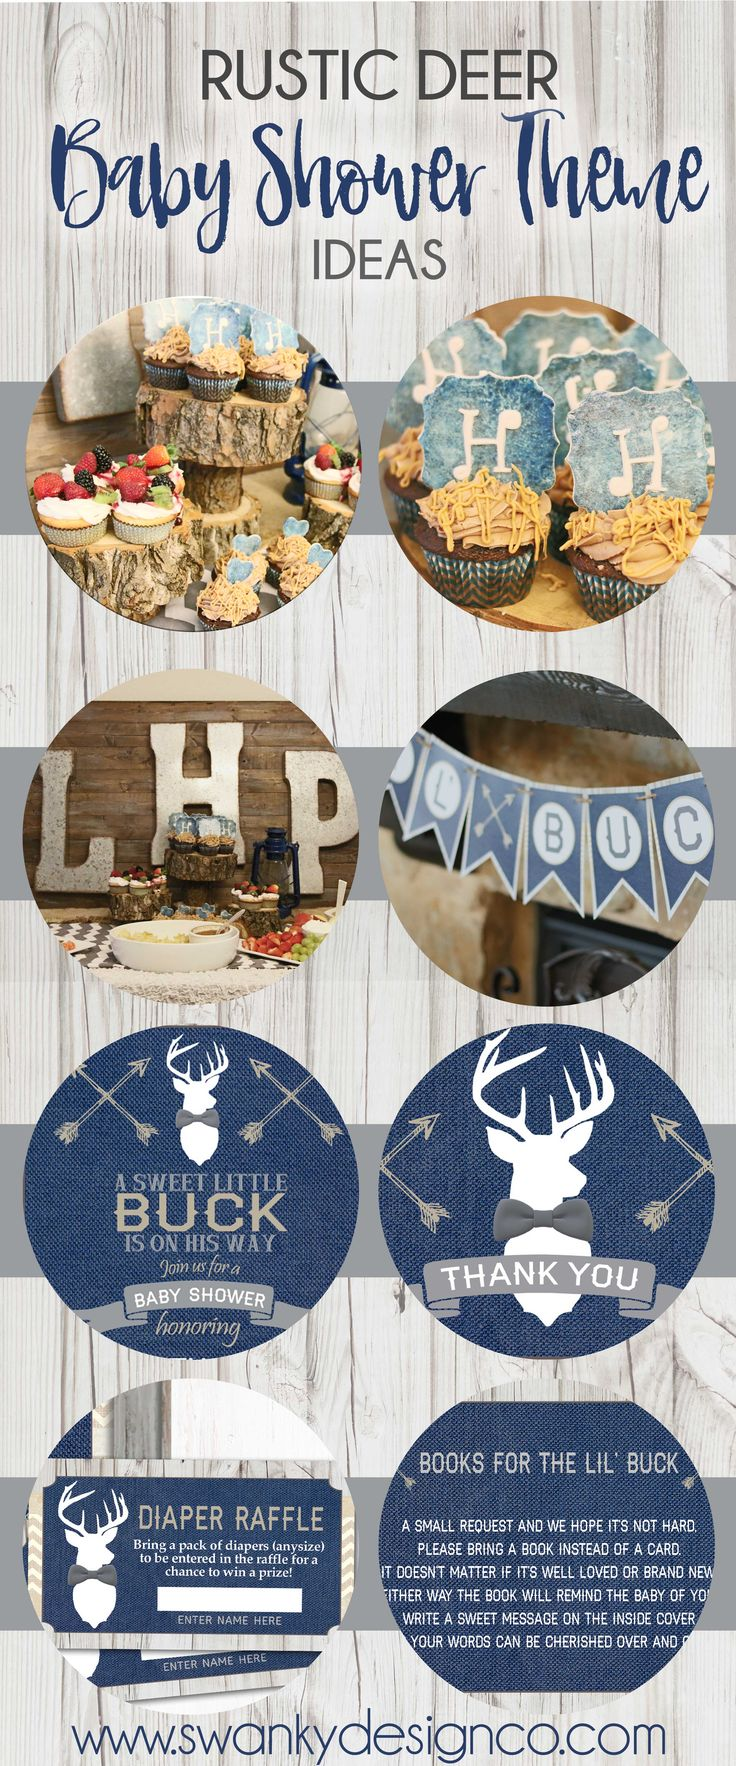 Rustic Deer Baby Shower Theme Ideas, Little Buck Baby Shower Theme, Navy and Gray Deer Baby Shower, Bowtie Deer Baby Shower, Deer Baby Shower Invitations